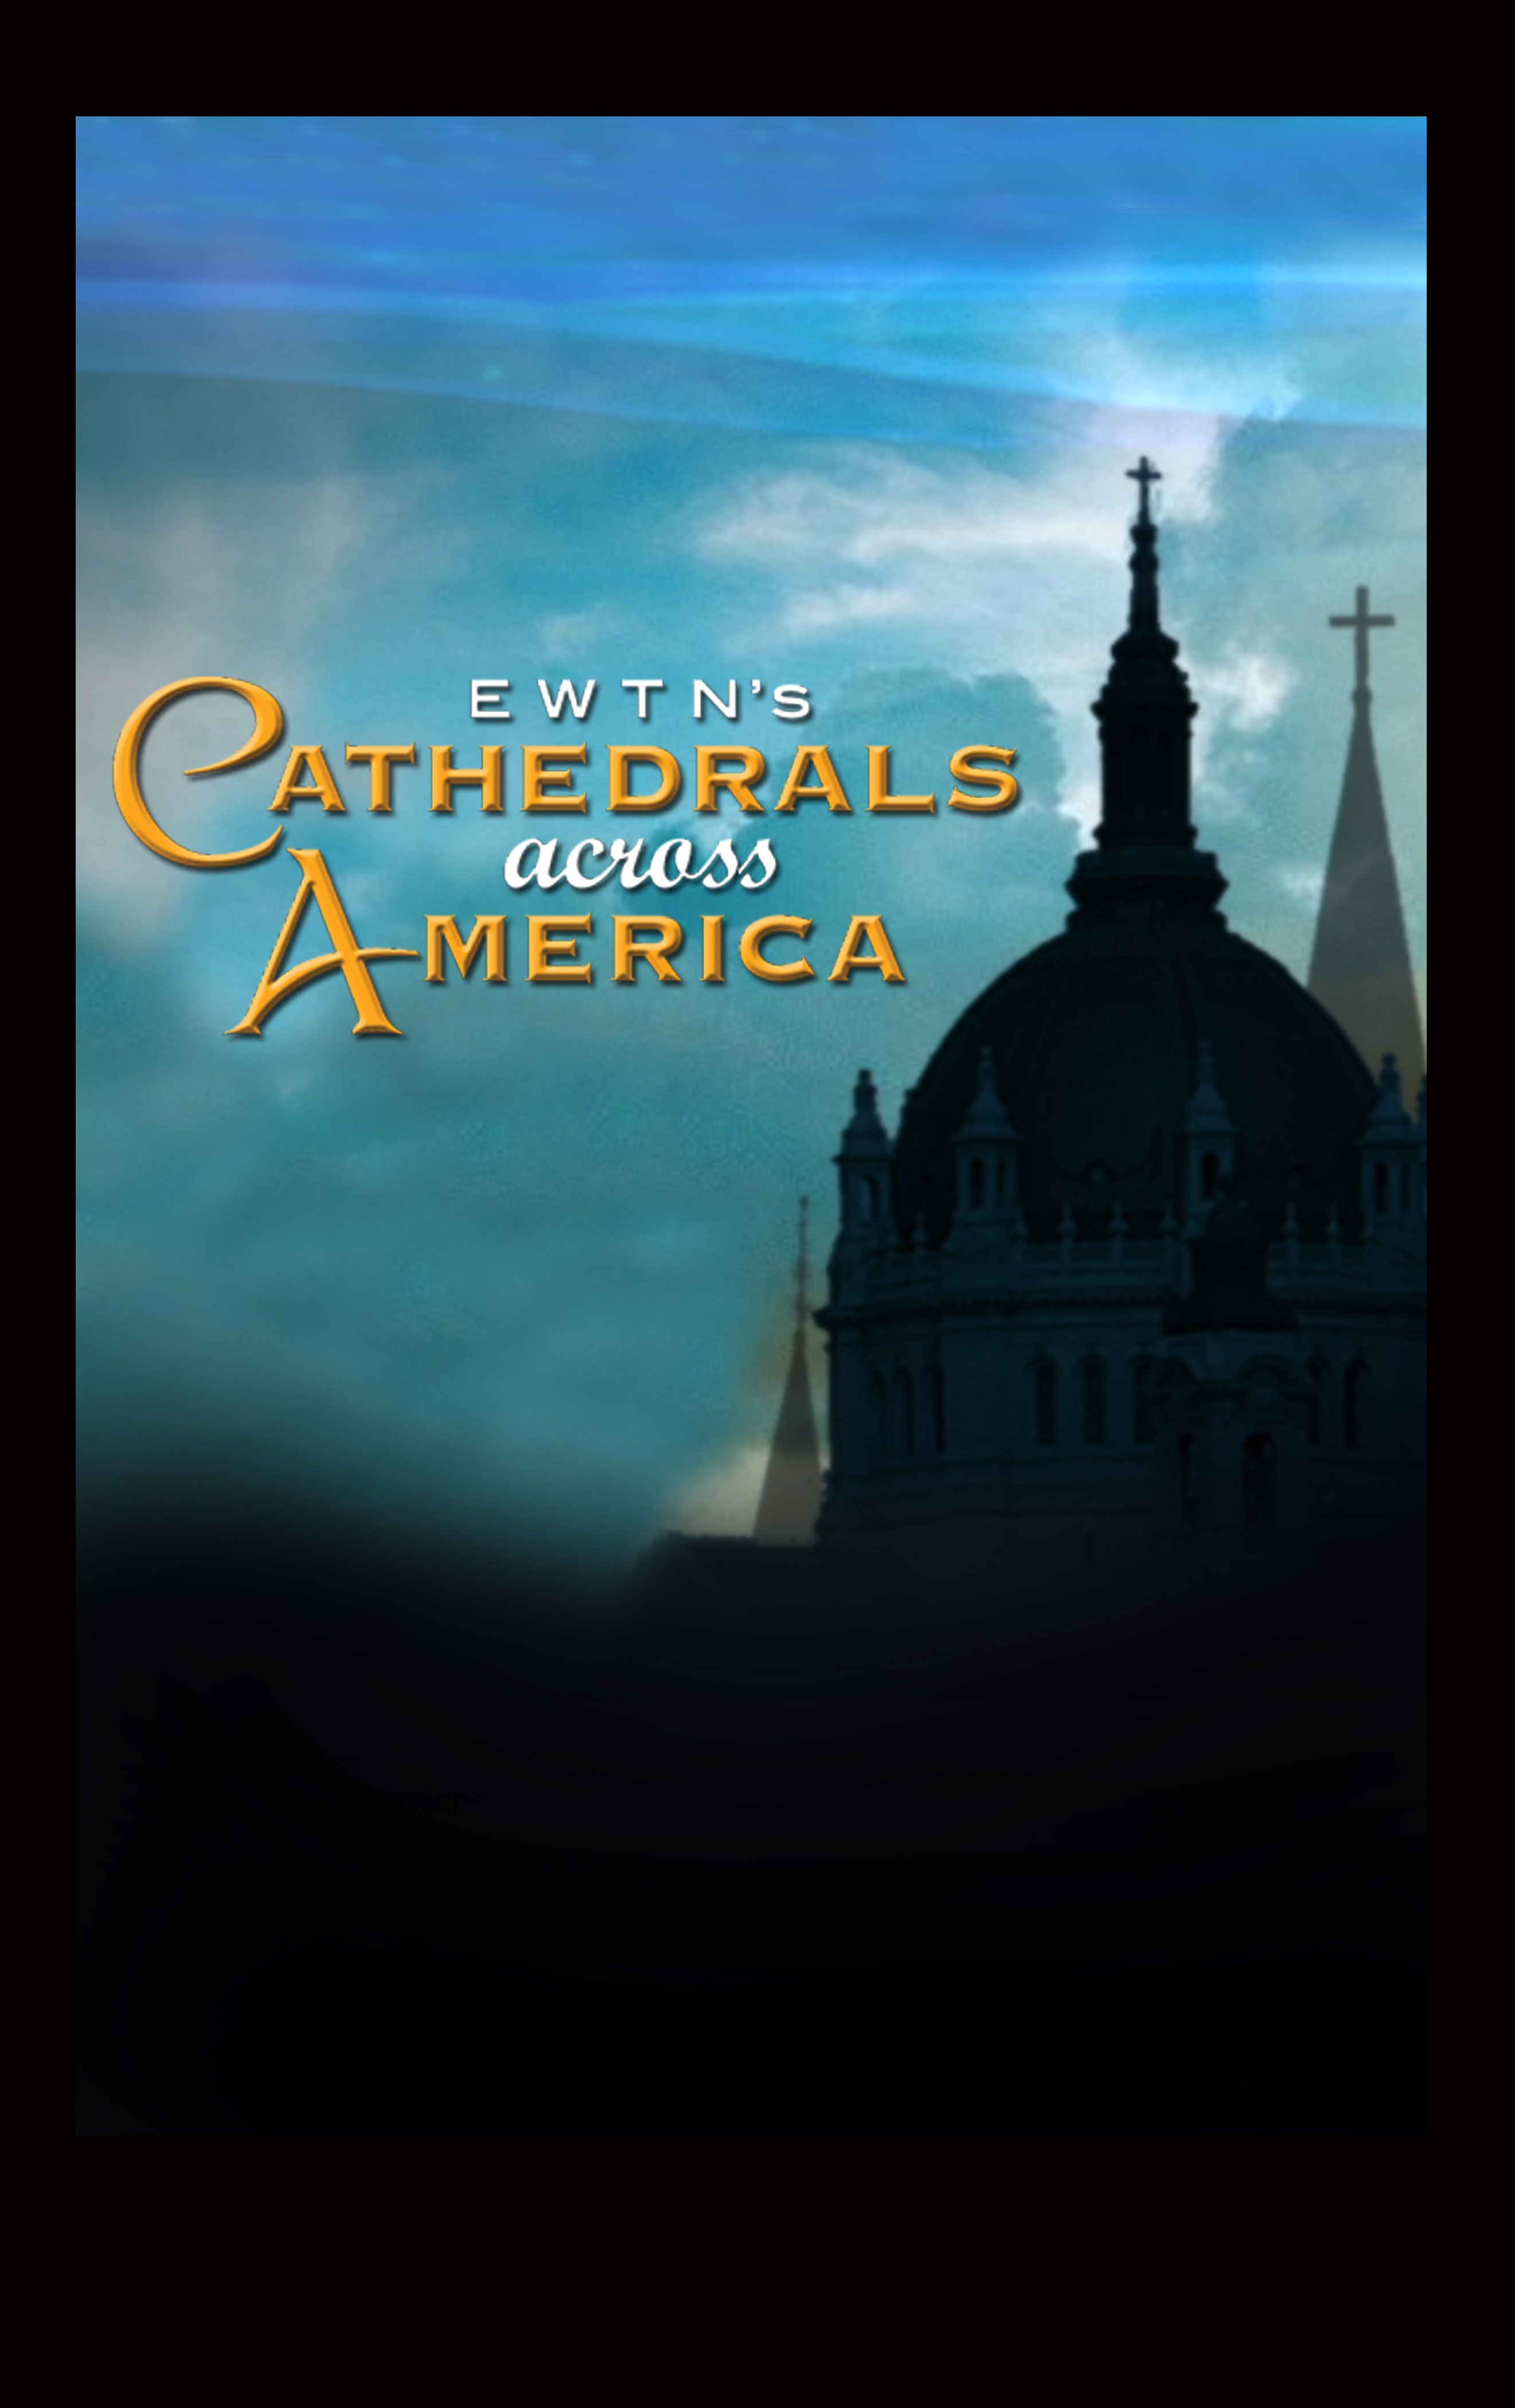 CATHEDRALS ACROSS AMERICA